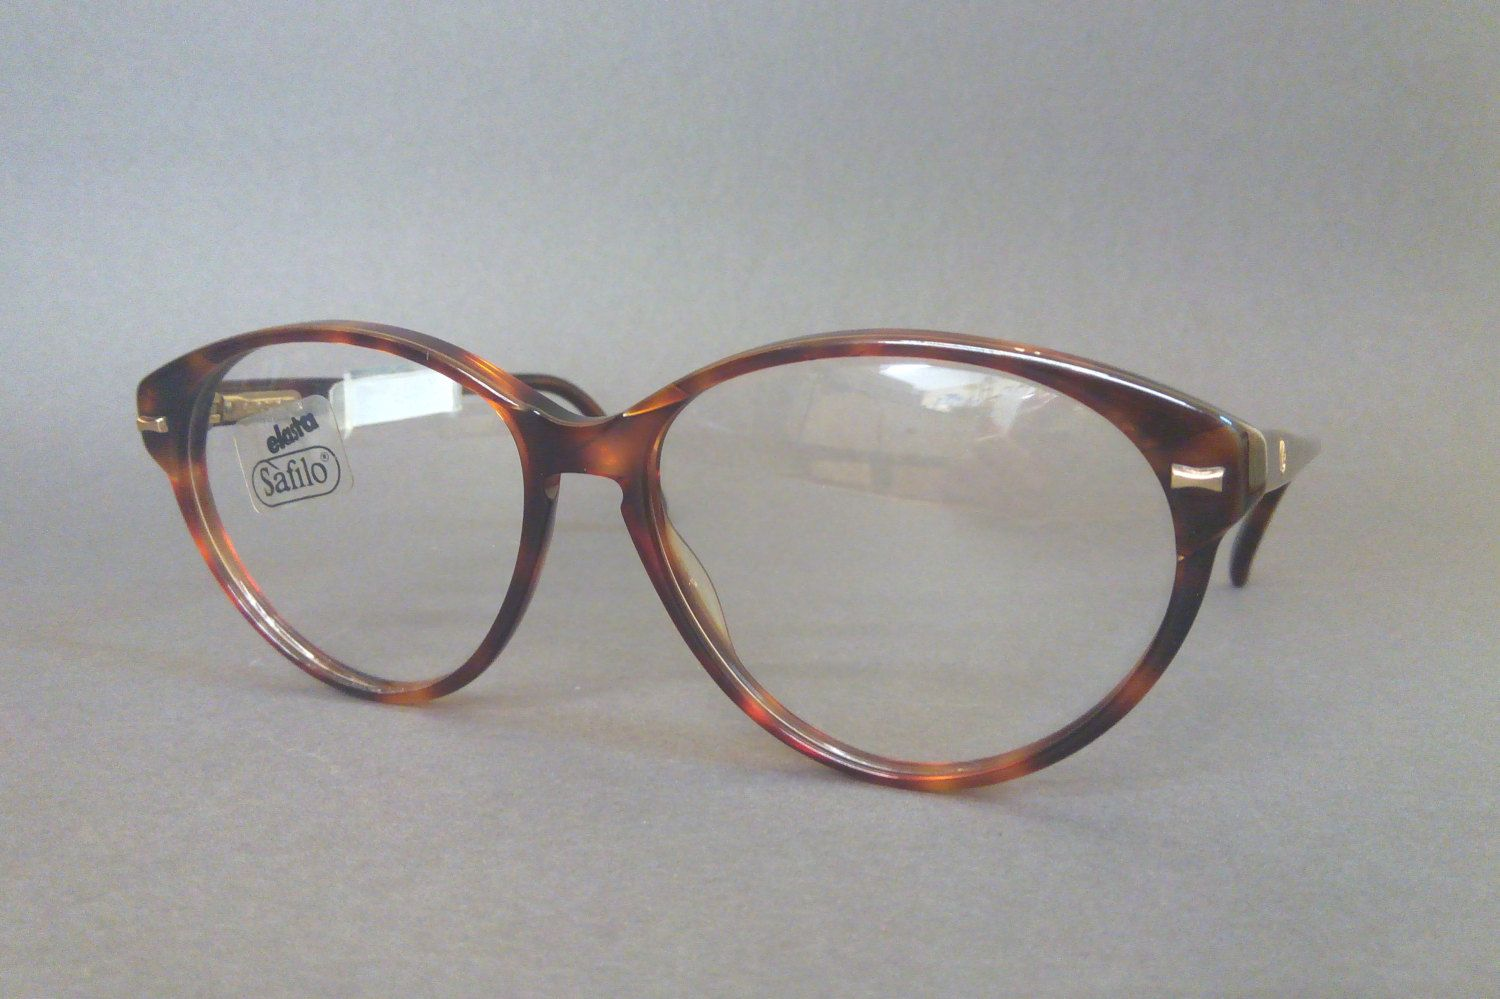 Original Vintage Safilo 90s Tortoise Cat Eye Glasses, Tortoiseshell ...